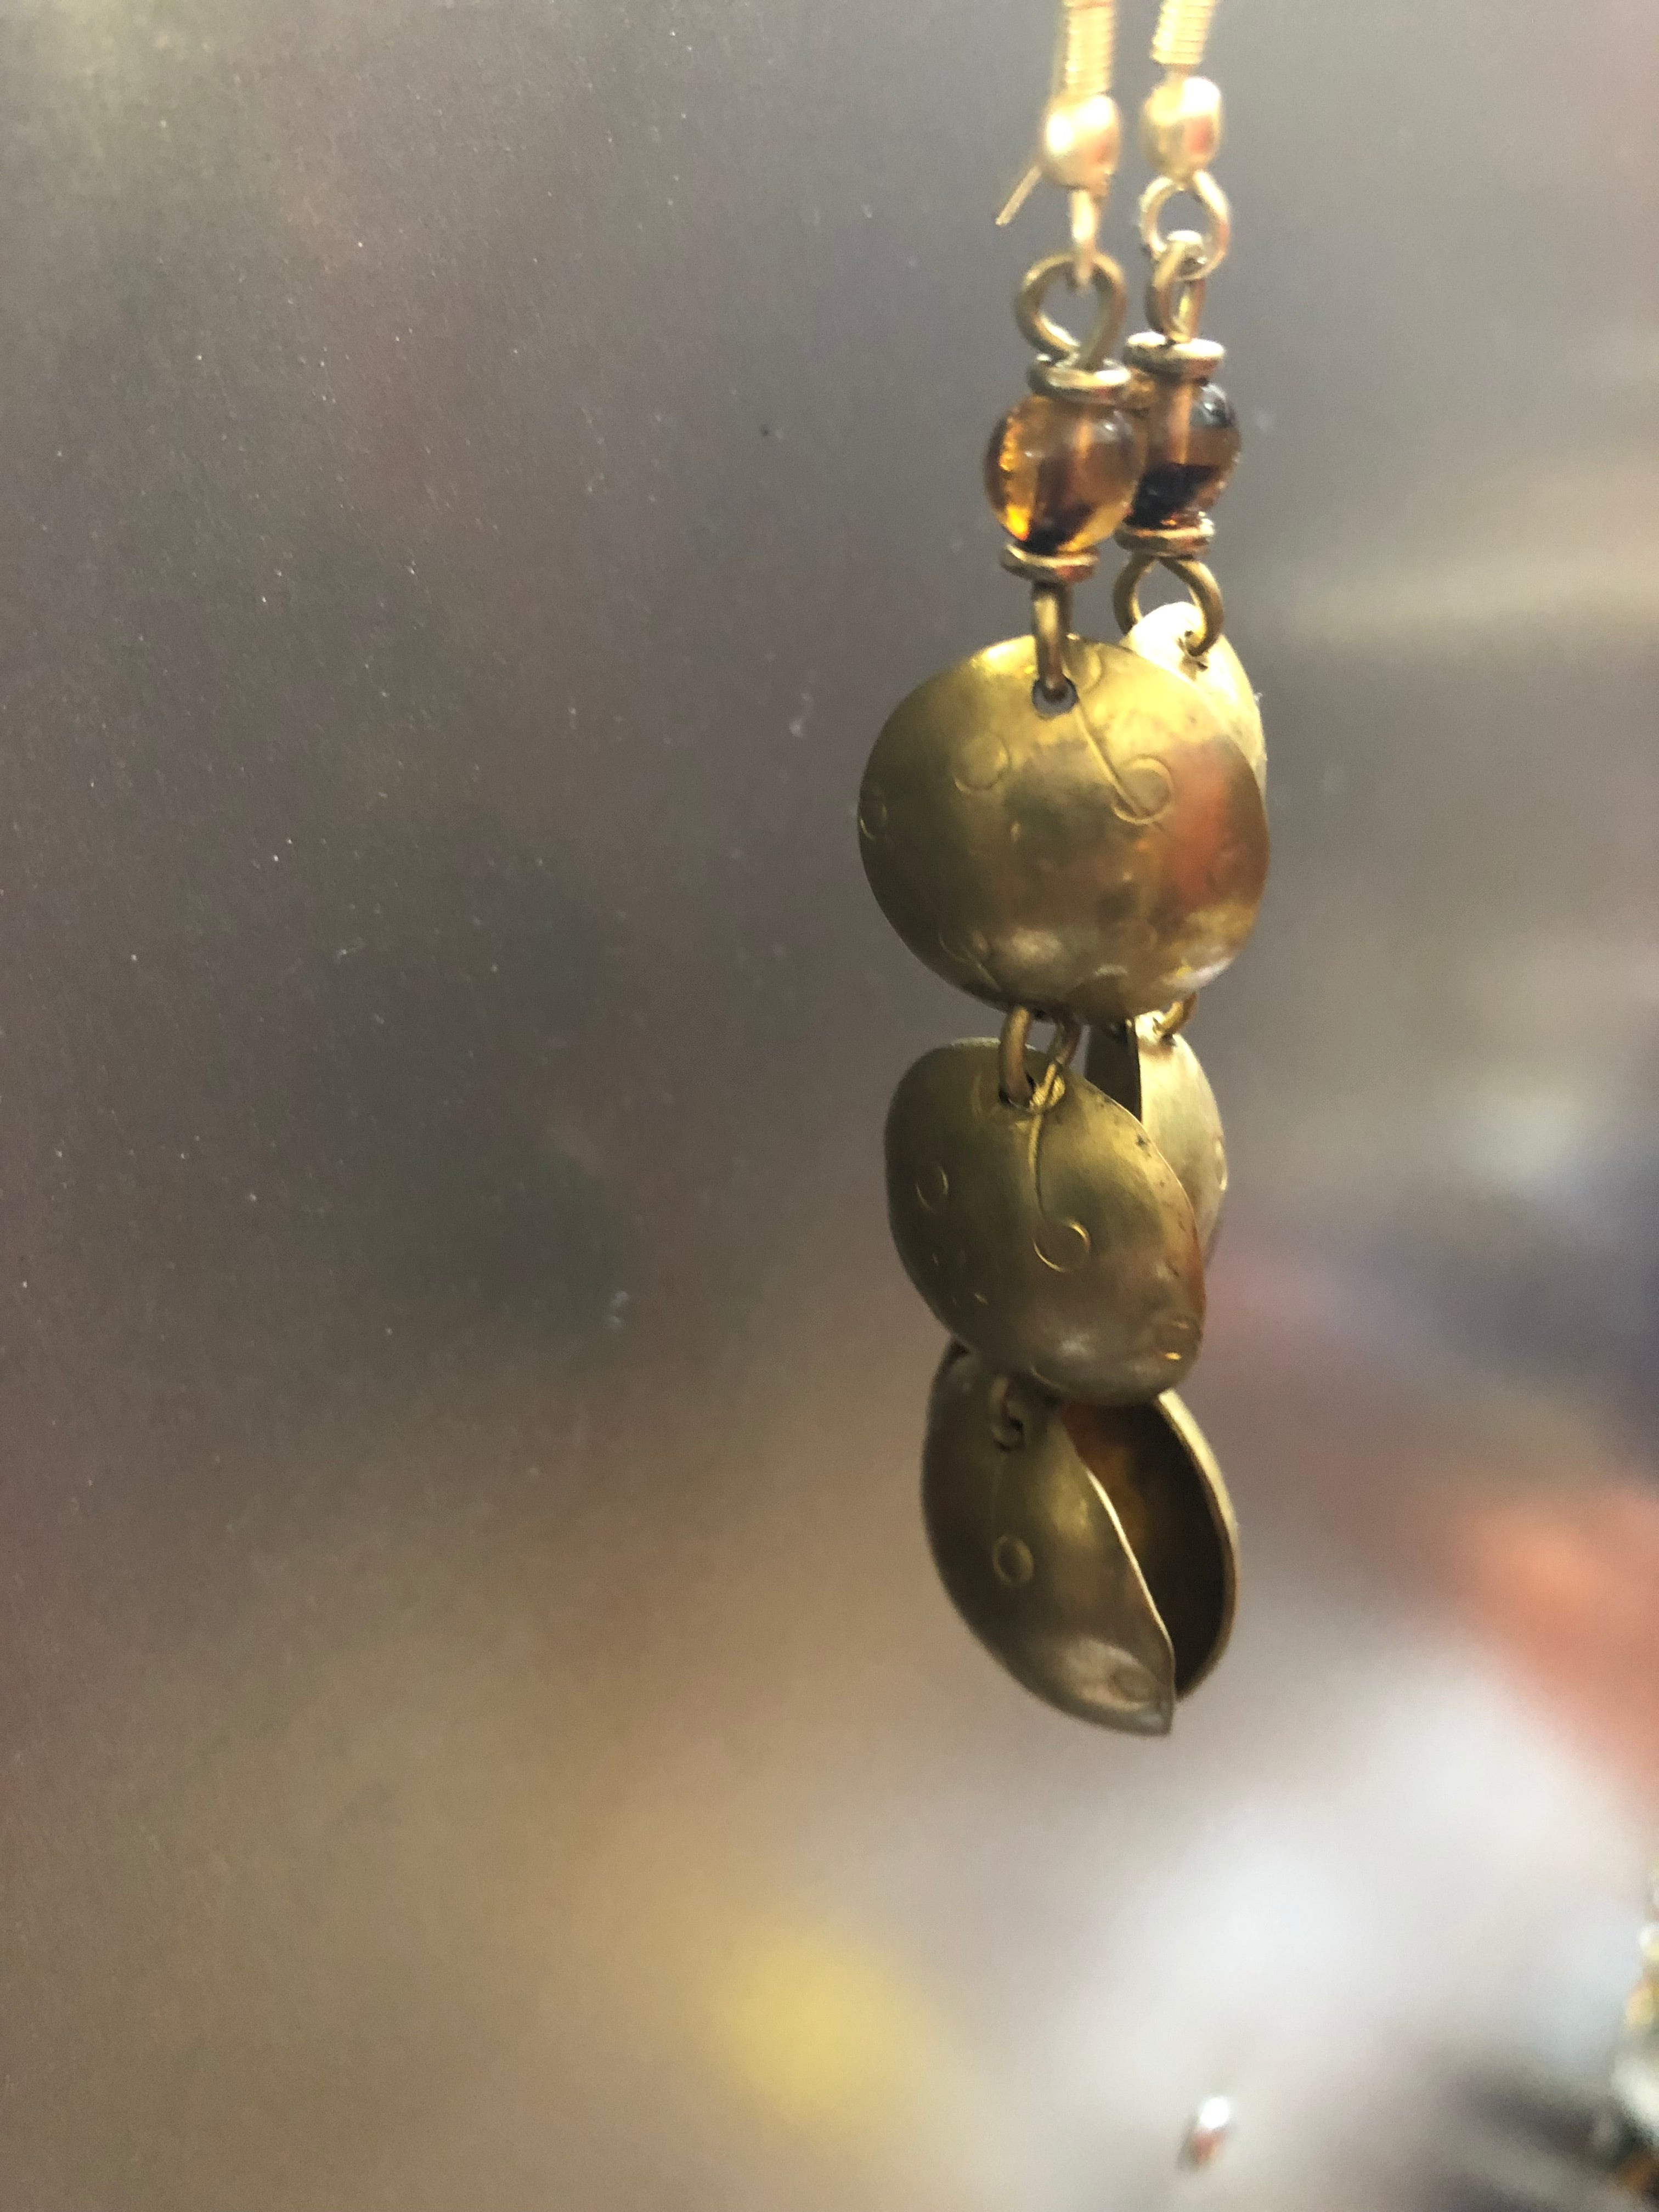 Brass Bowl earrings with varied details